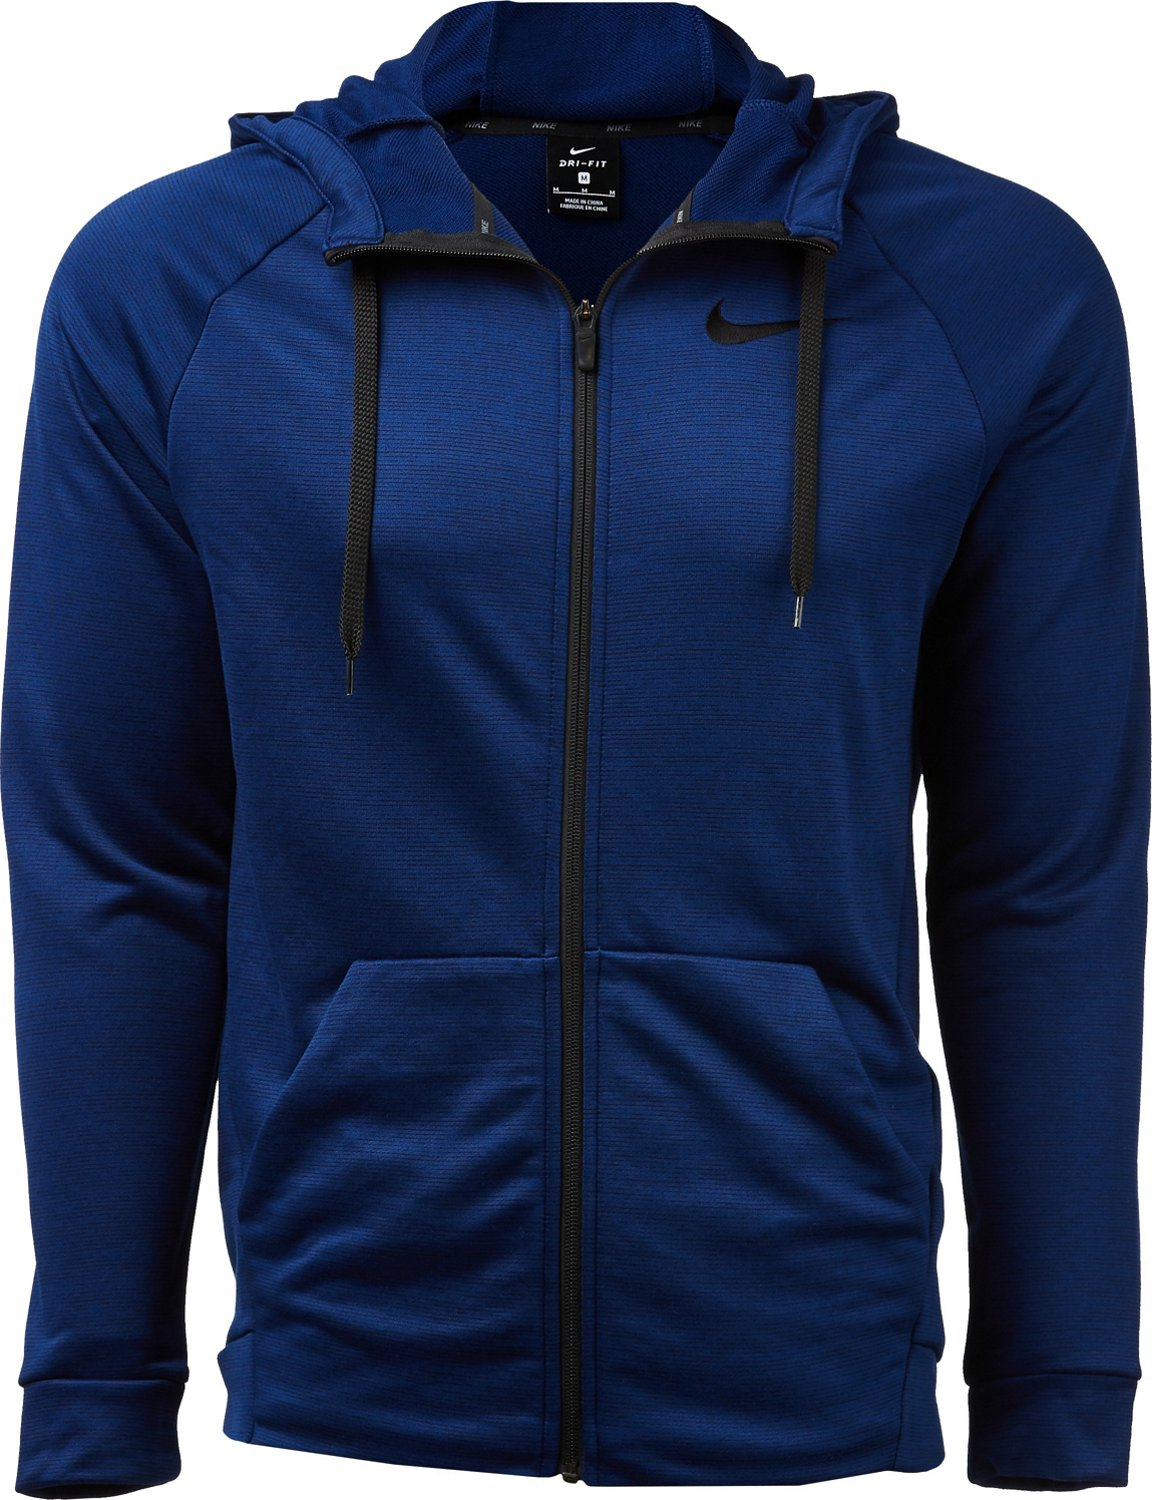 cca61aadcbc9 Display product reviews for Nike Men s Dry Training Hoodie